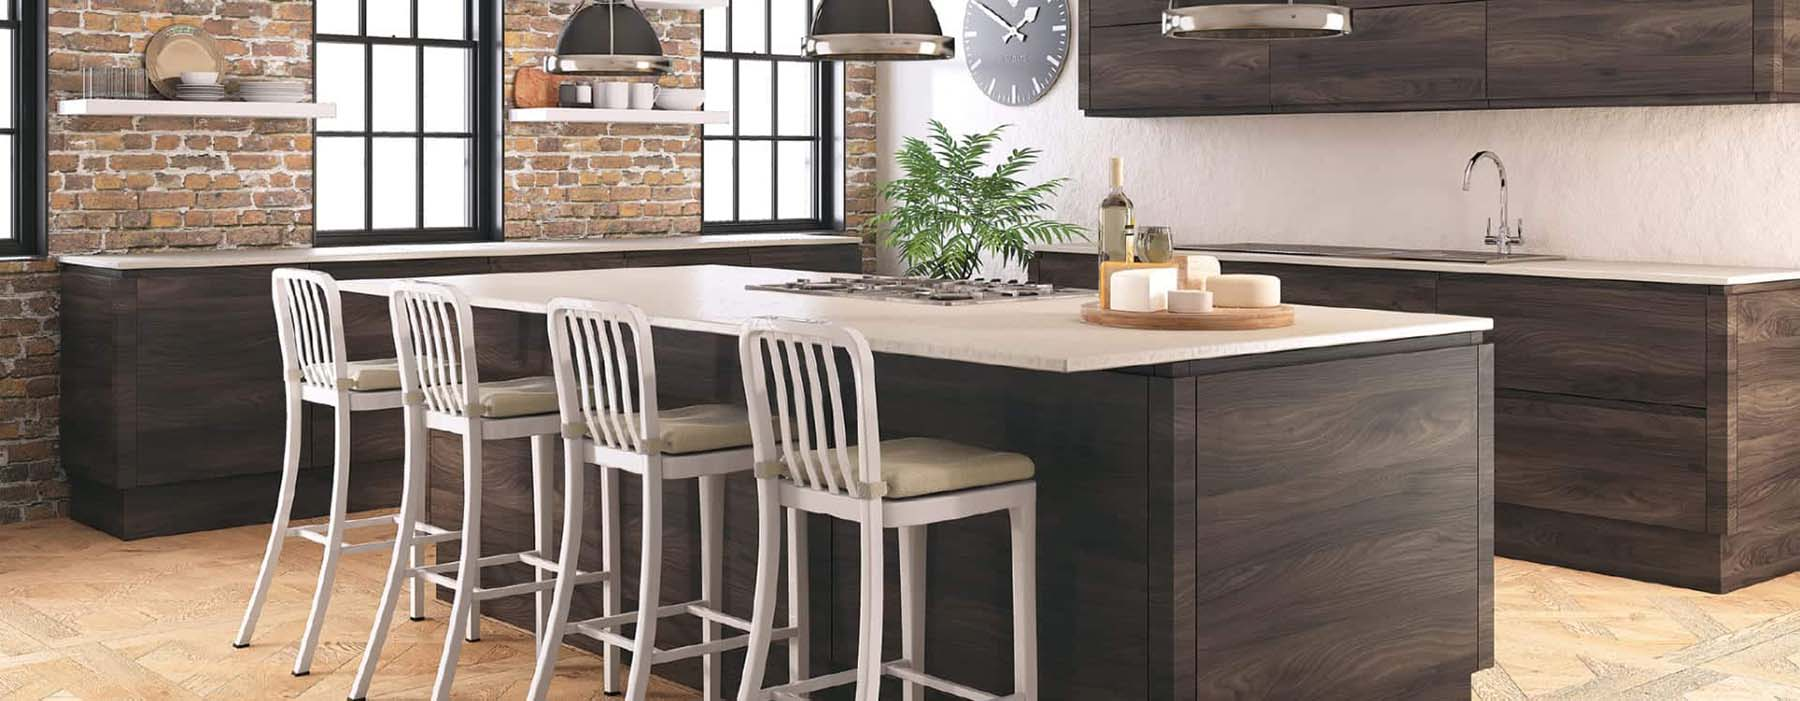 wood kitchen cabinets with white countertops red brick accent wall